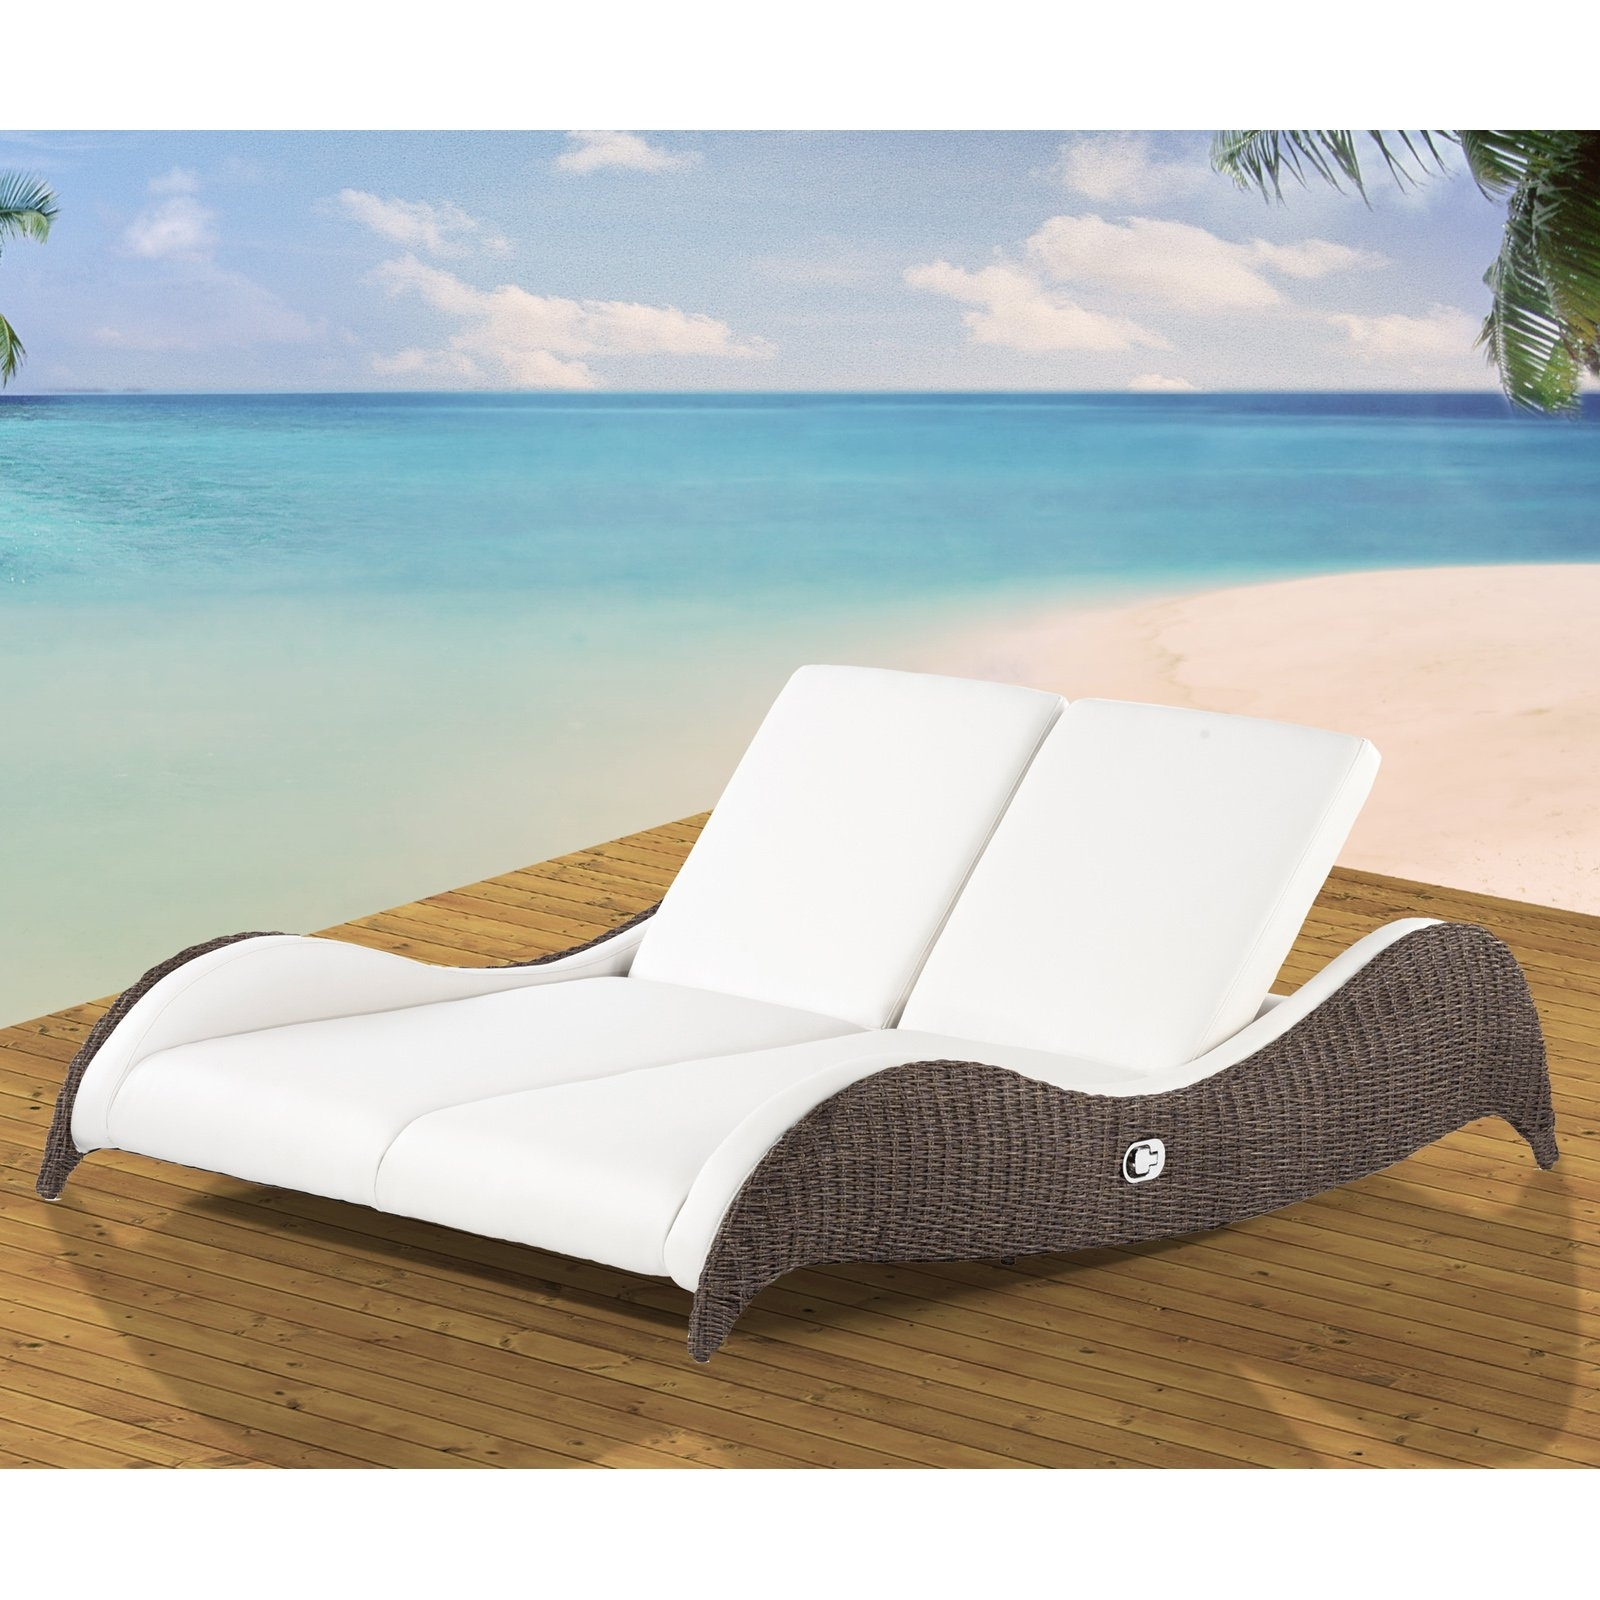 Outdoor : Plastic Lounge Chairs Lowes Outdoor Chaise Lounge Inside Most Popular Modern Outdoor Chaise Lounge Chairs (View 10 of 15)